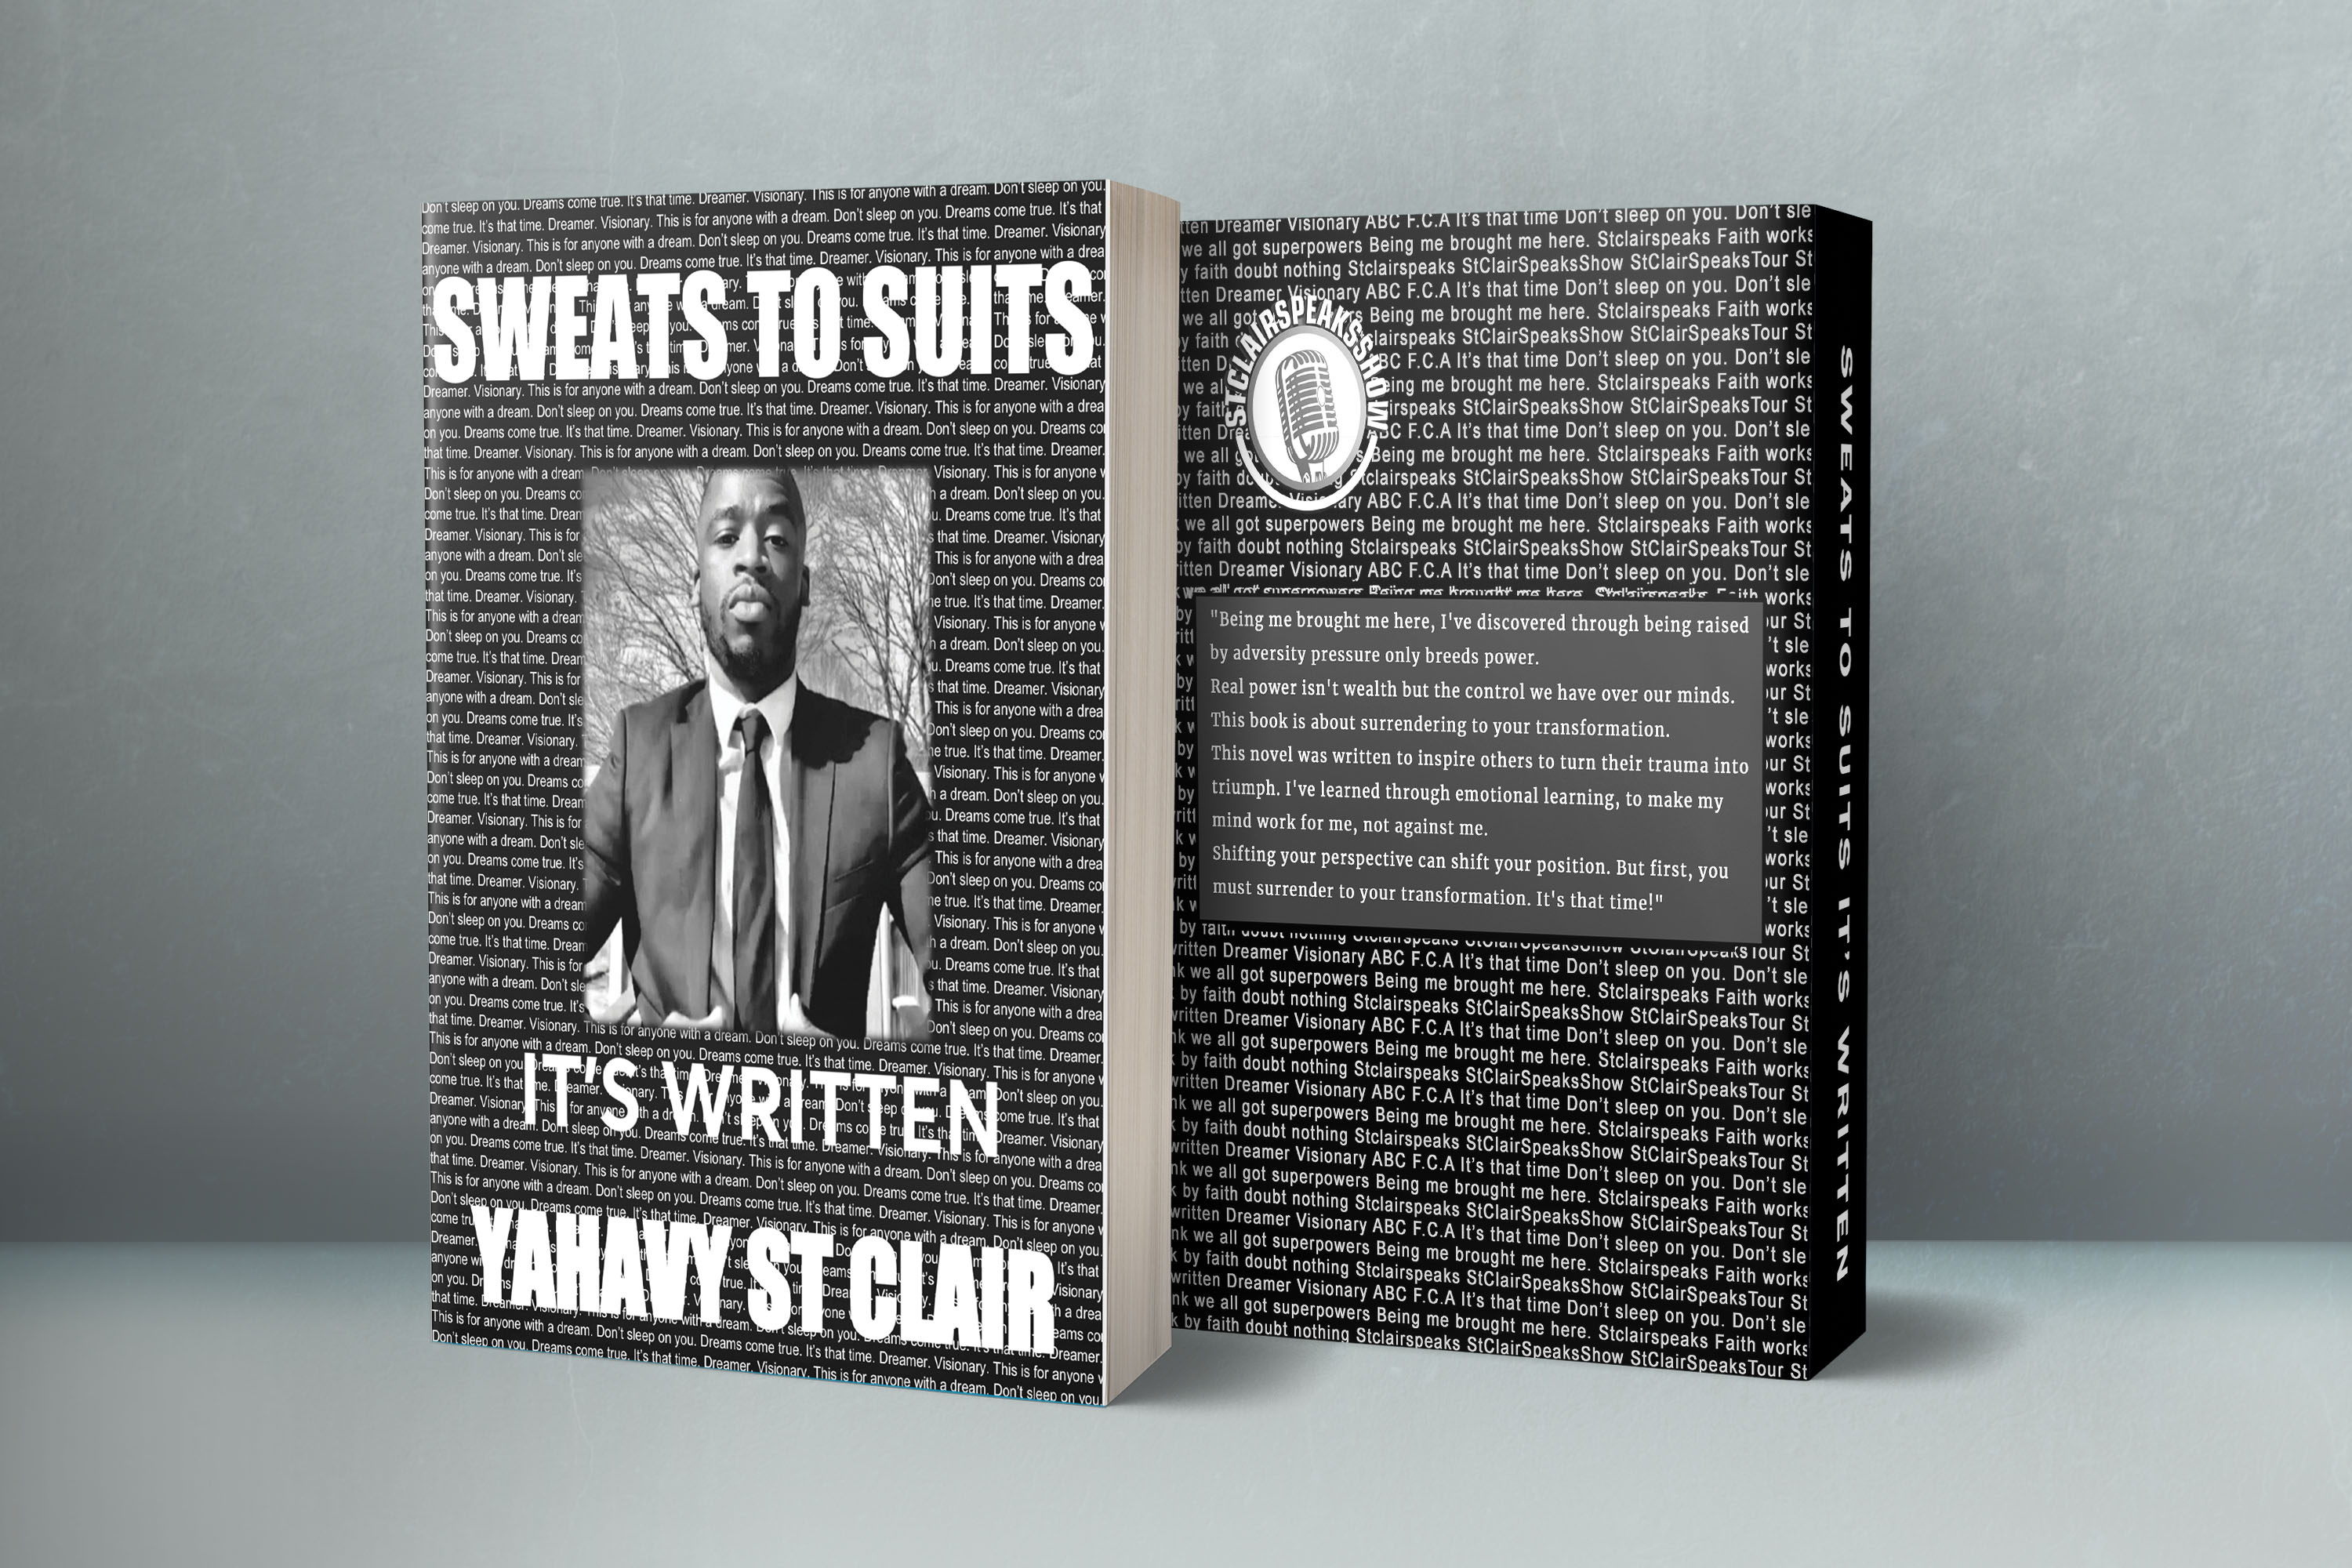 Sweats to Suits: New Release From Motivational Speaker & Author: Yahavy David St Clair